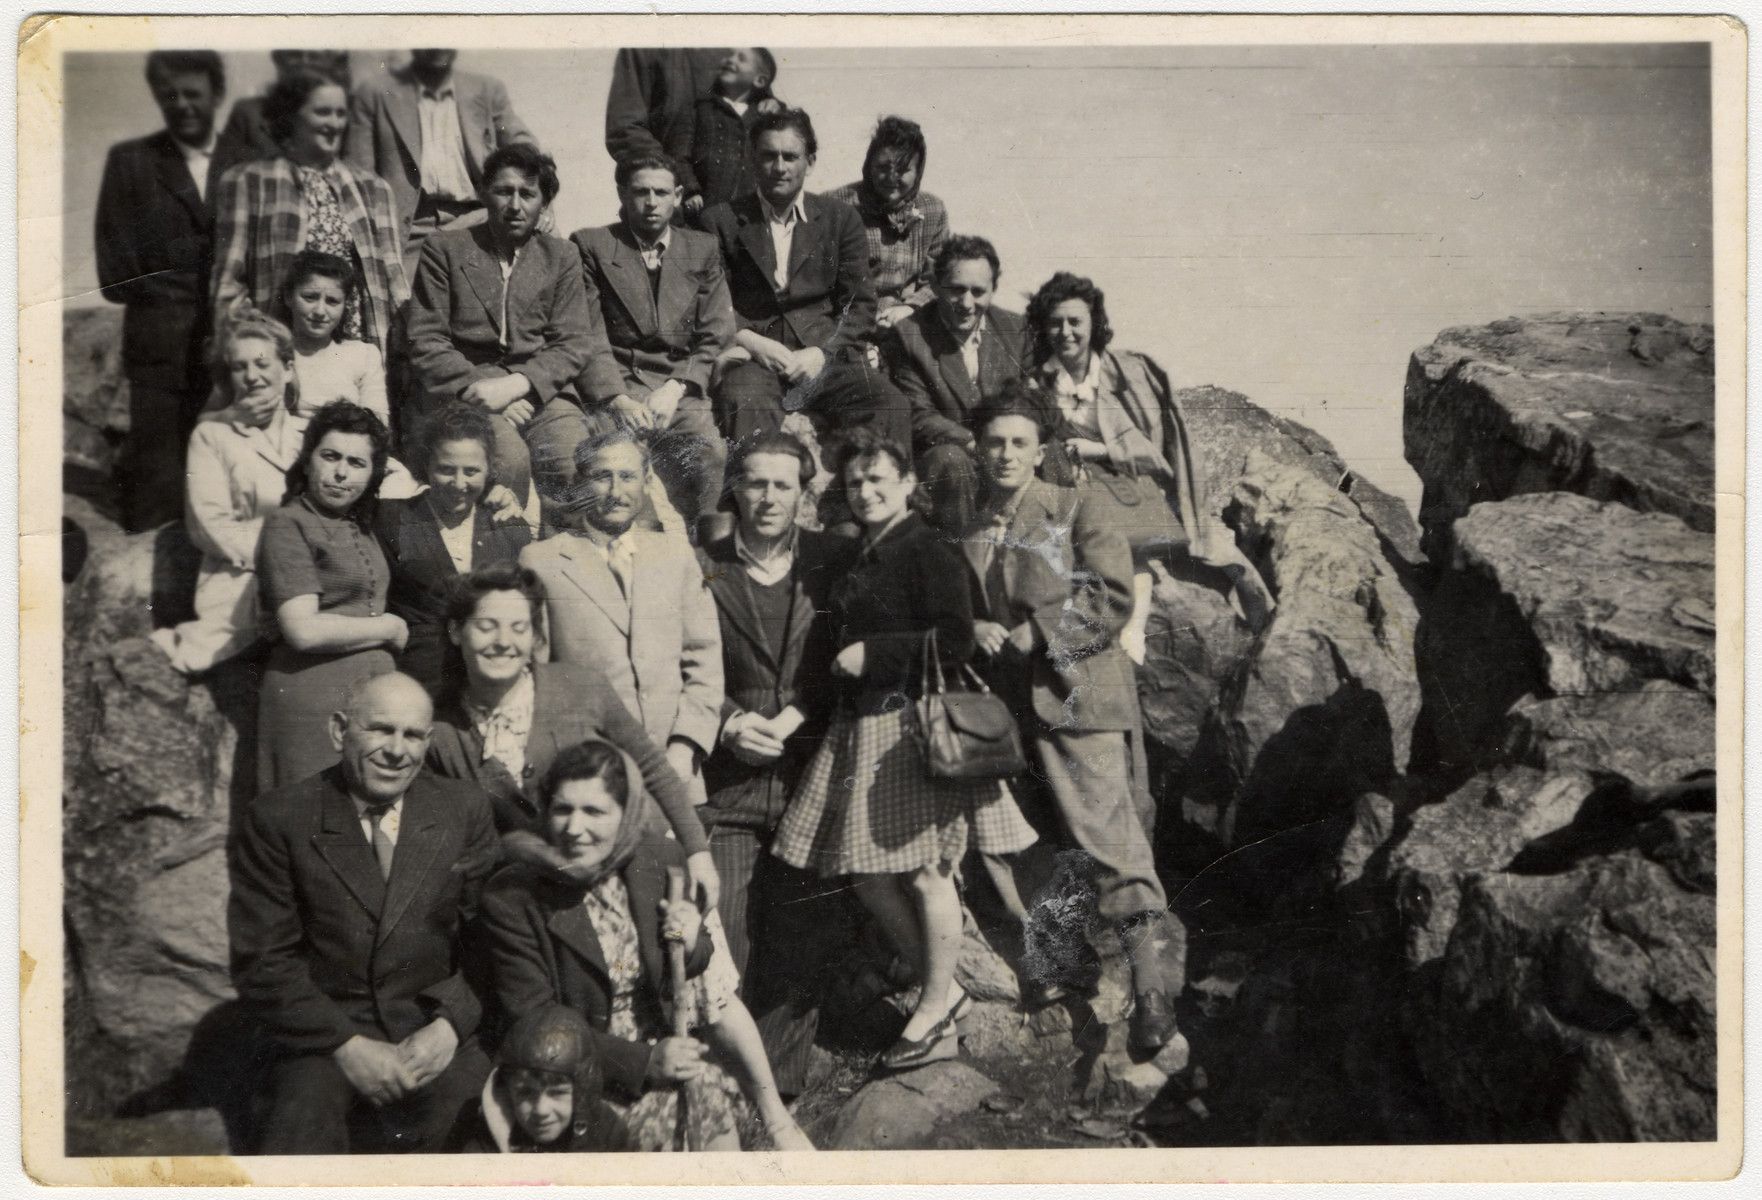 A large group of Jewish displaced persons goes on an excursion in the rocky countryside near Frankfurt.  Among those pictured (on the bottom) are Misha Mendel Lazarovitch (left), Channa Bienavoitch and Shanke Minuskin.